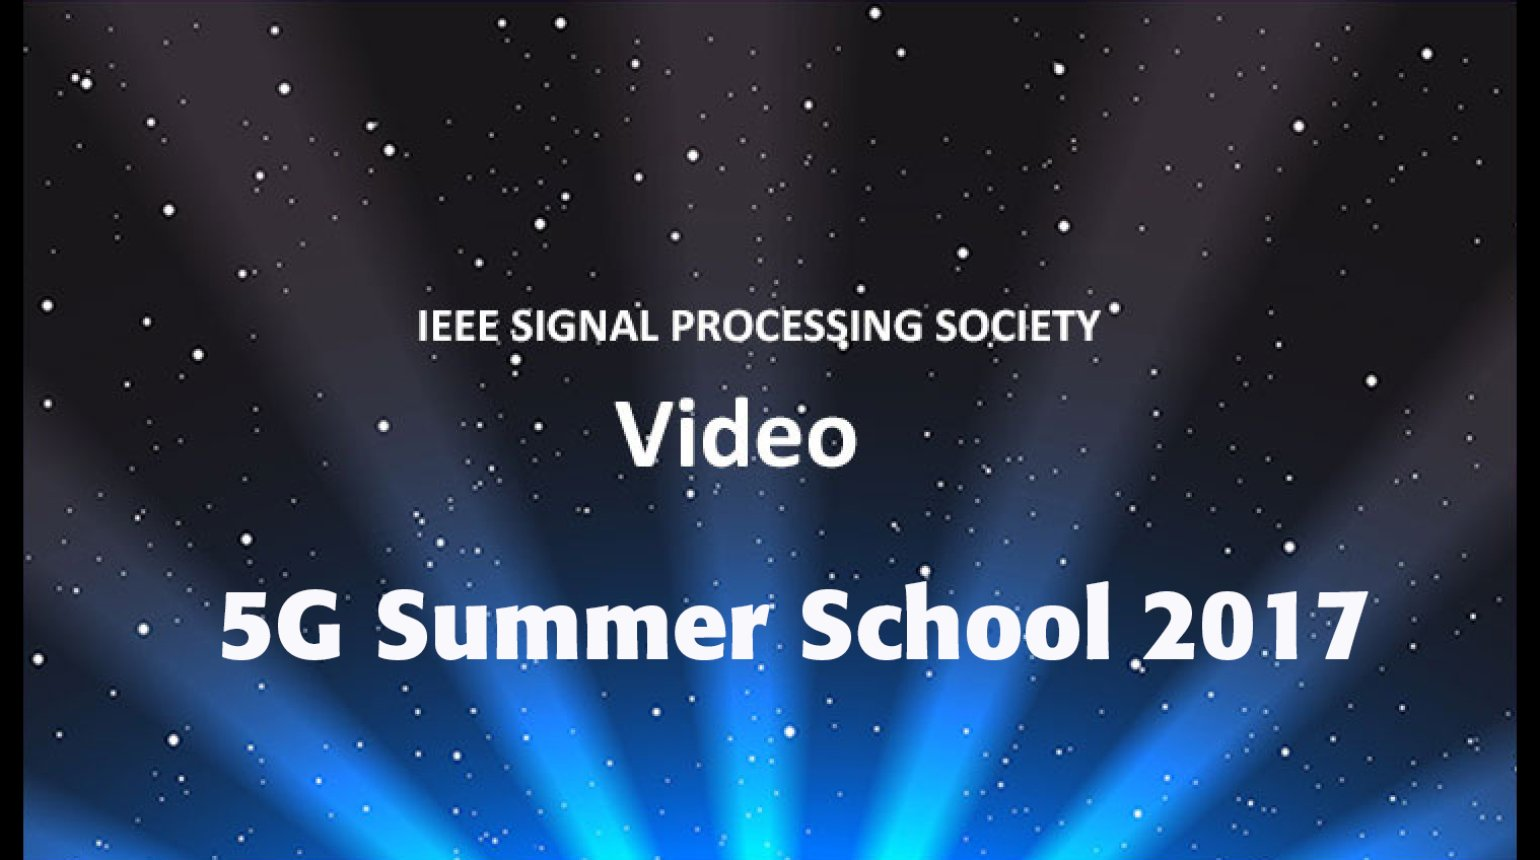 5G Summer School 2017 - Signal Processing Society